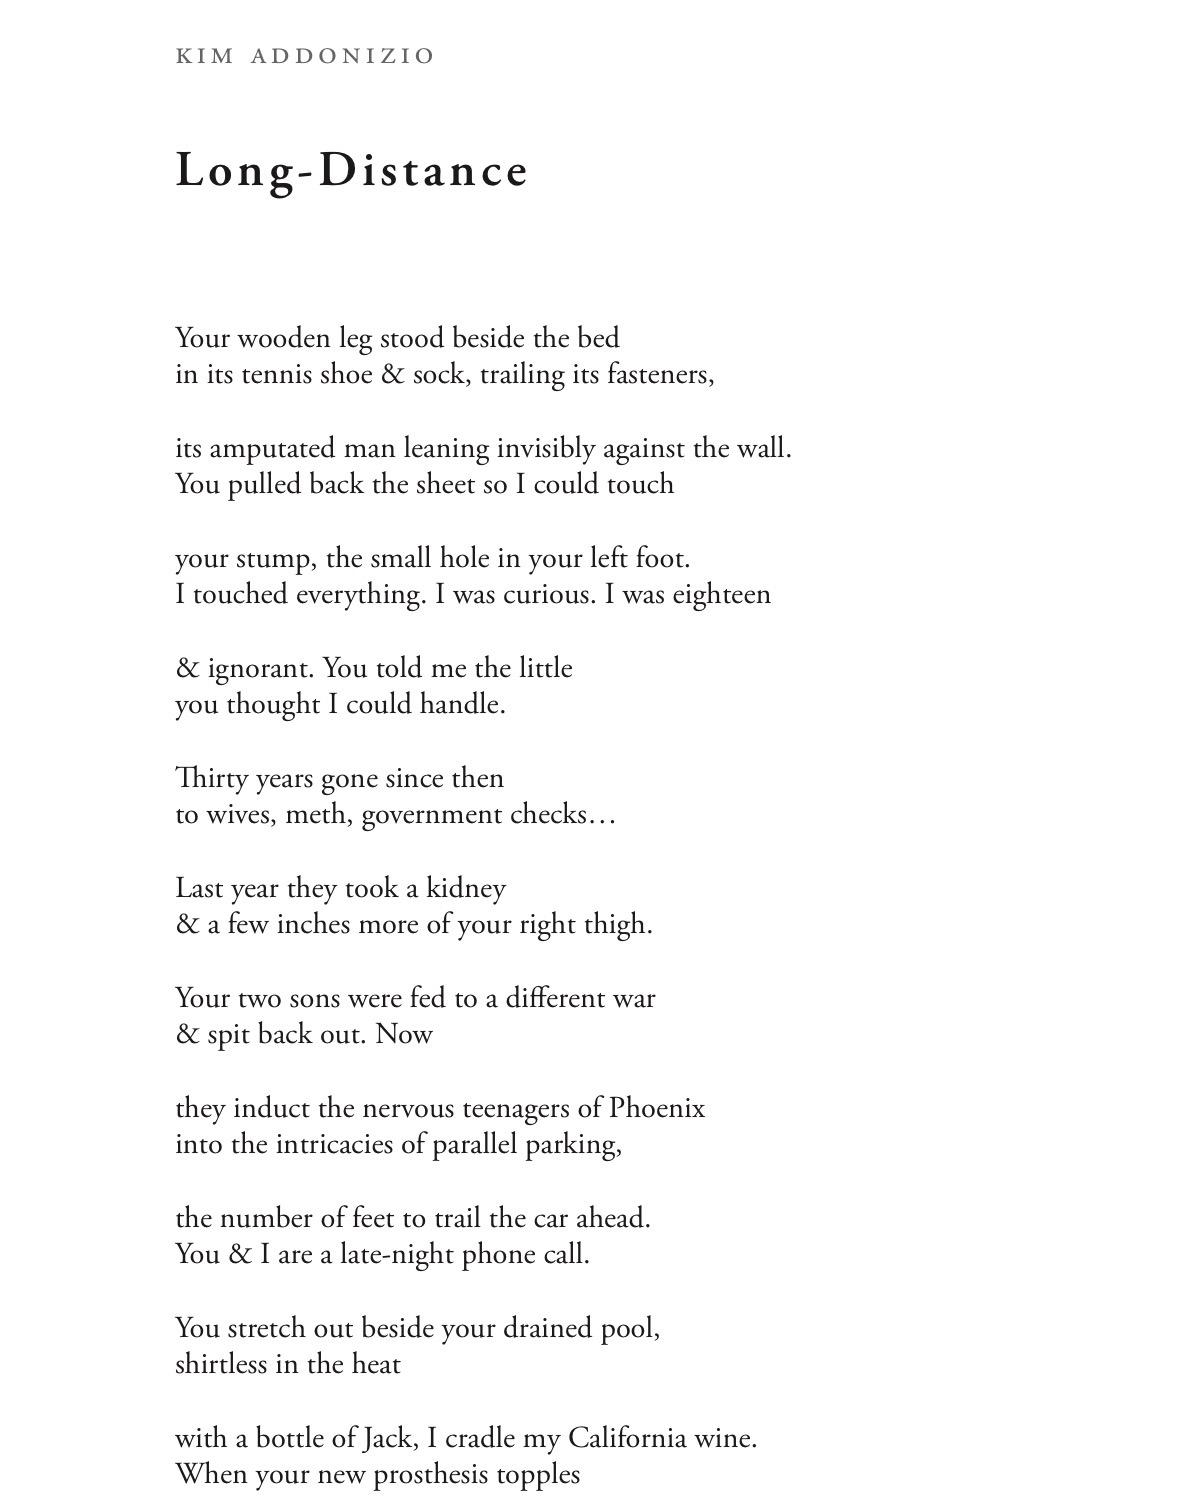 Long distance poems for her